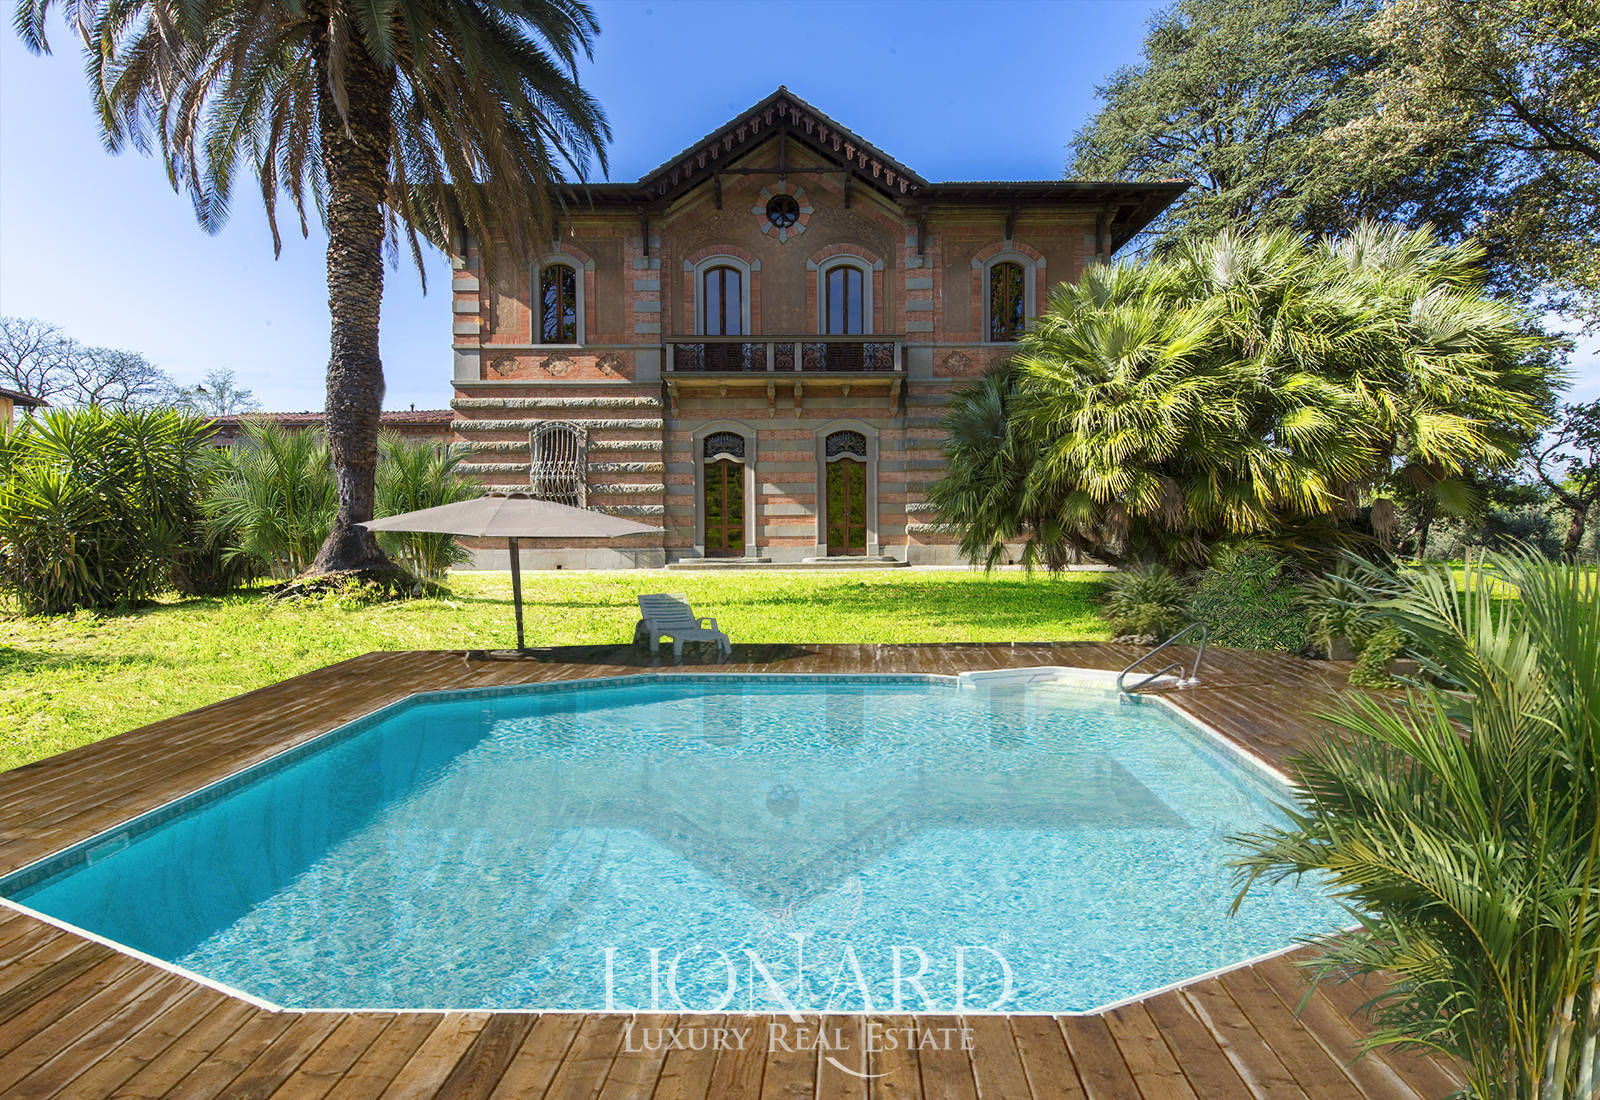 prestigious_real_estate_in_italy?id=1969